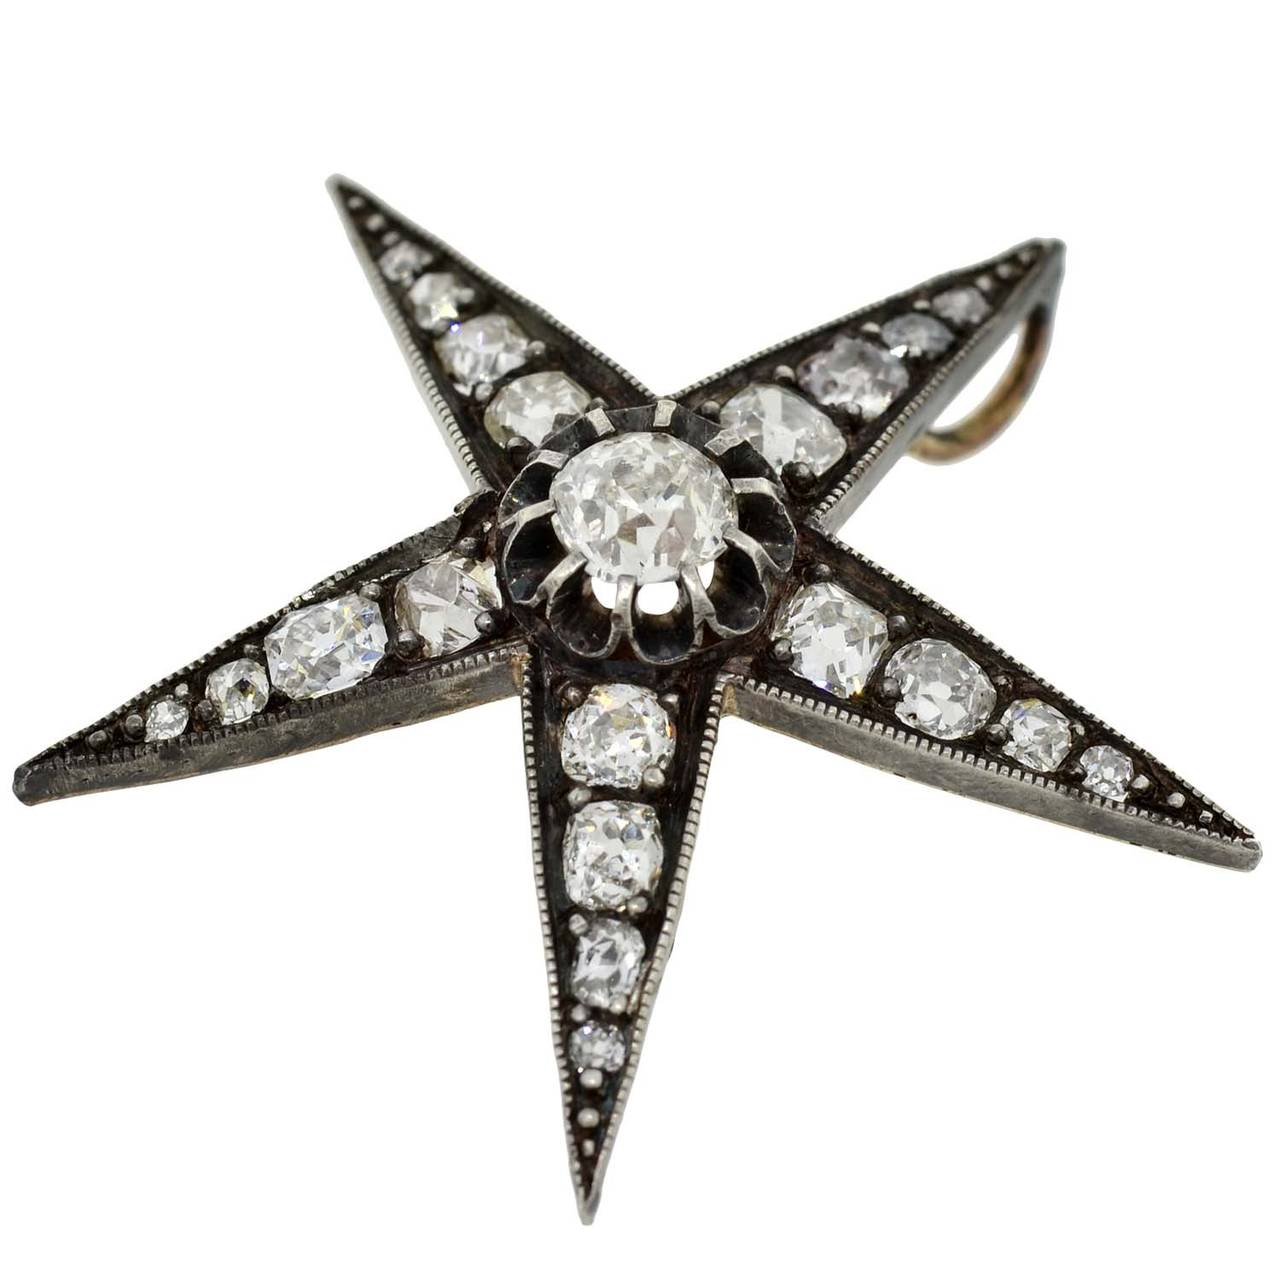 An absolutely gorgeous diamond star pendant from the Victorian (ca1880) era! This beautiful piece is particularly large in size and depicts a sparkling 5-point star. Made of sterling topped 14kt gold, the star is detailed with 20 old Mine Cut